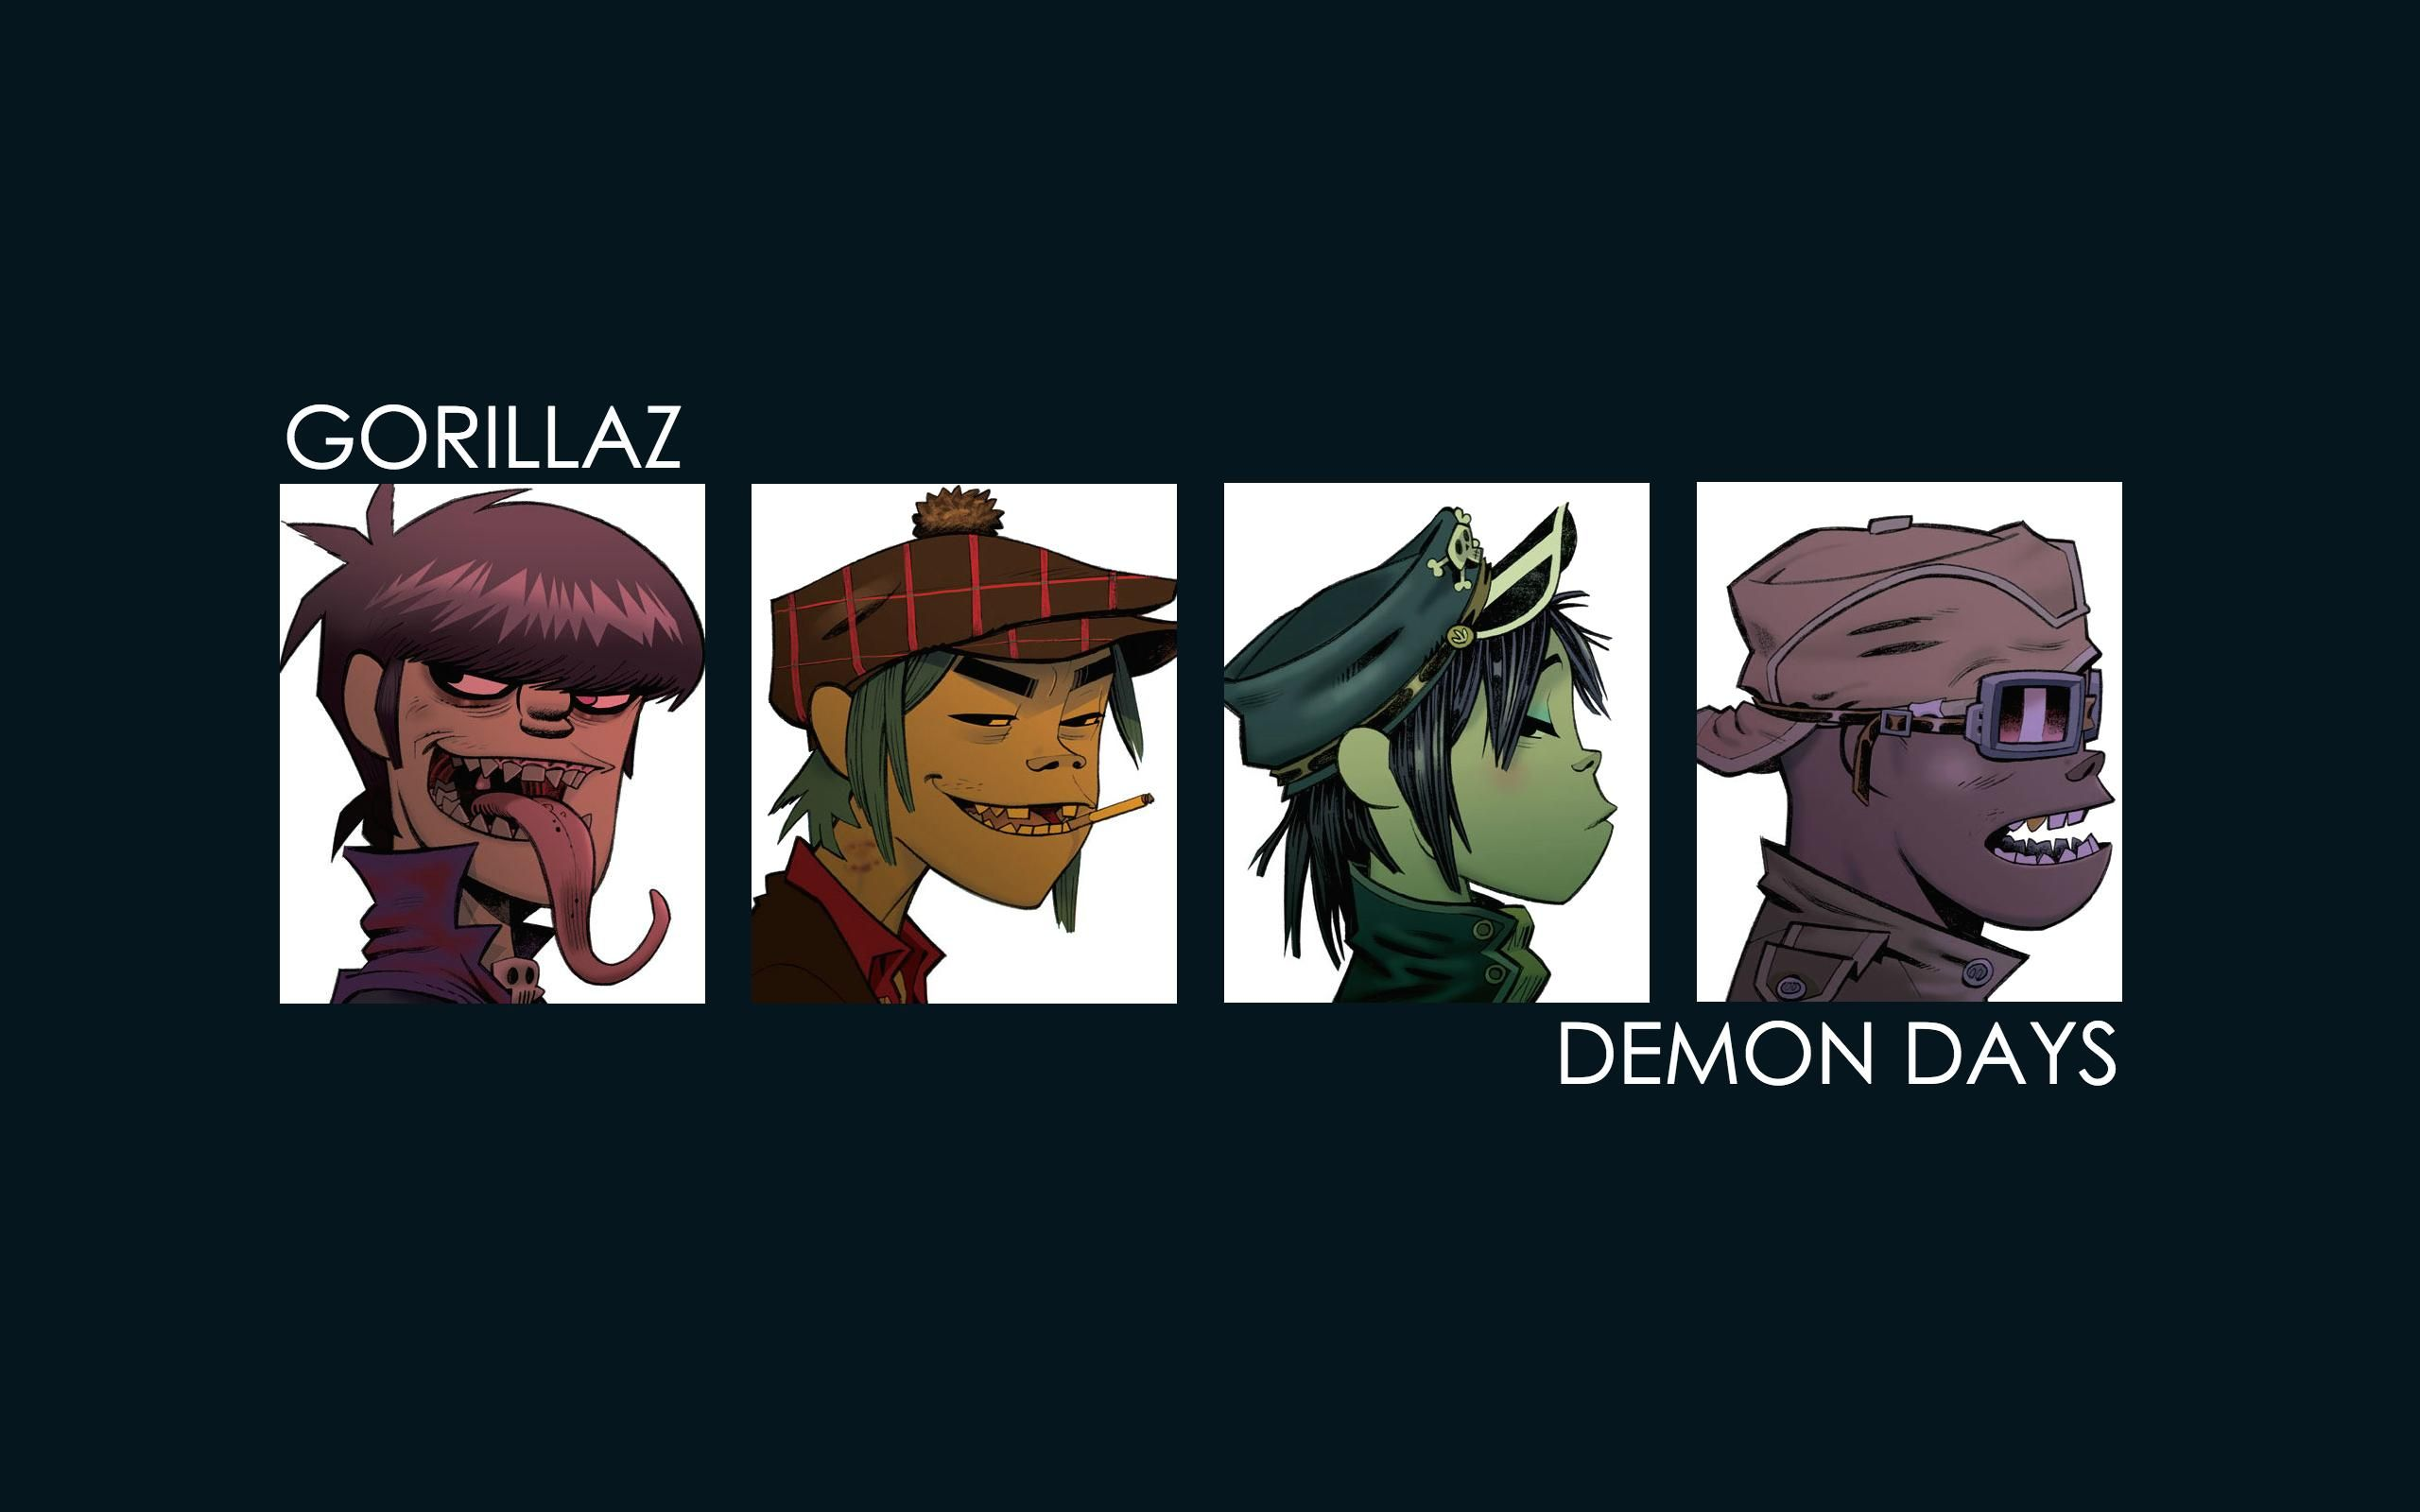 Gorillaz Demon Days Wallpaper Picture With High Resolution 2560x1600